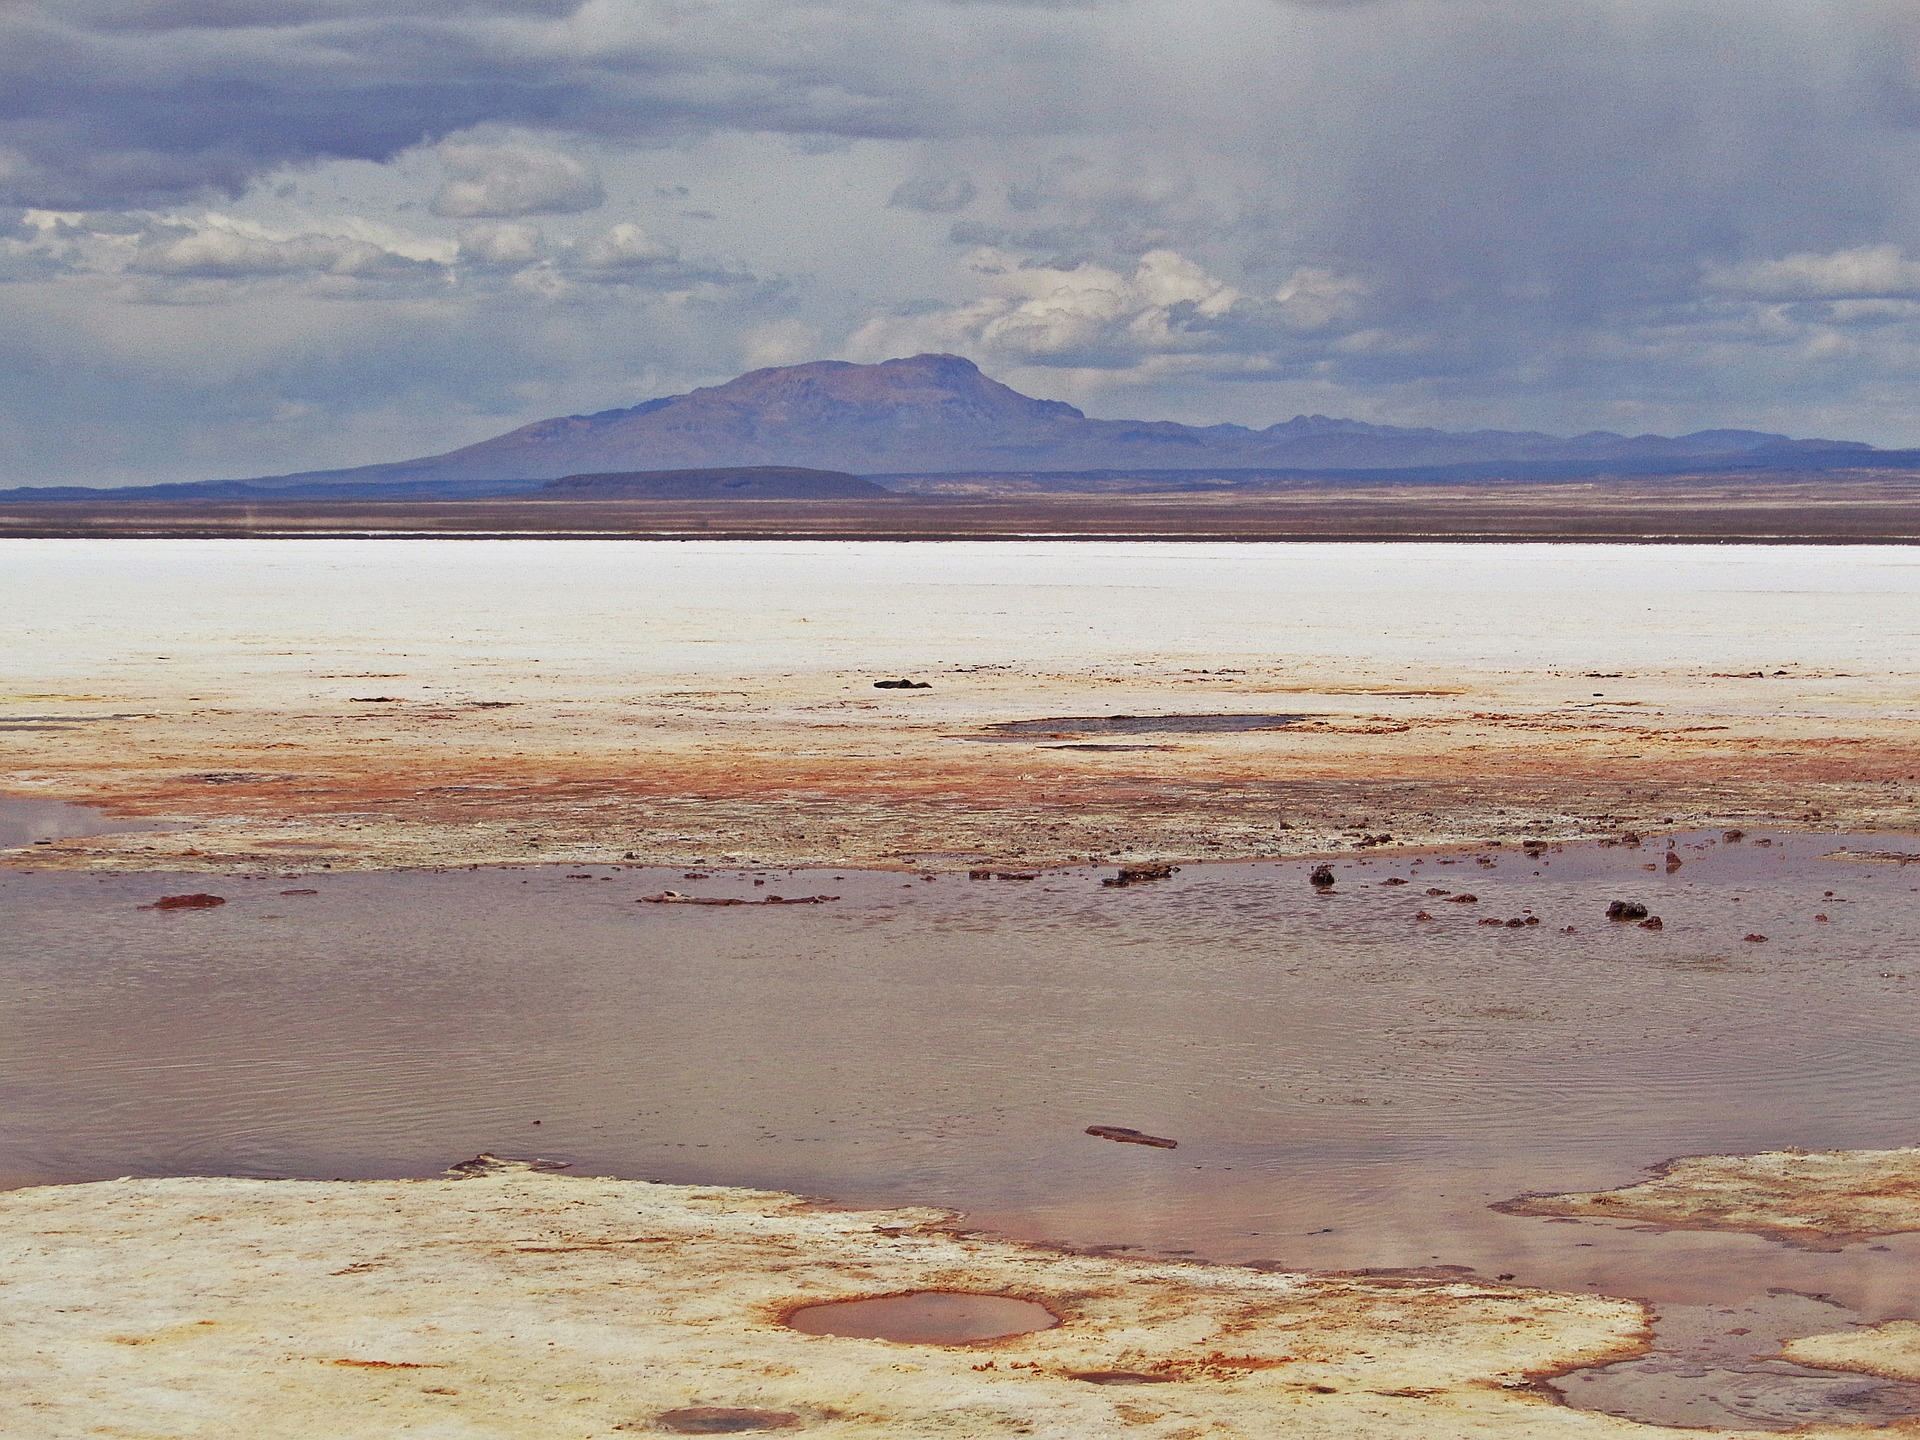 Highlights of Bolivia | Salar de Uyuni, Salt Lake, Bolivia